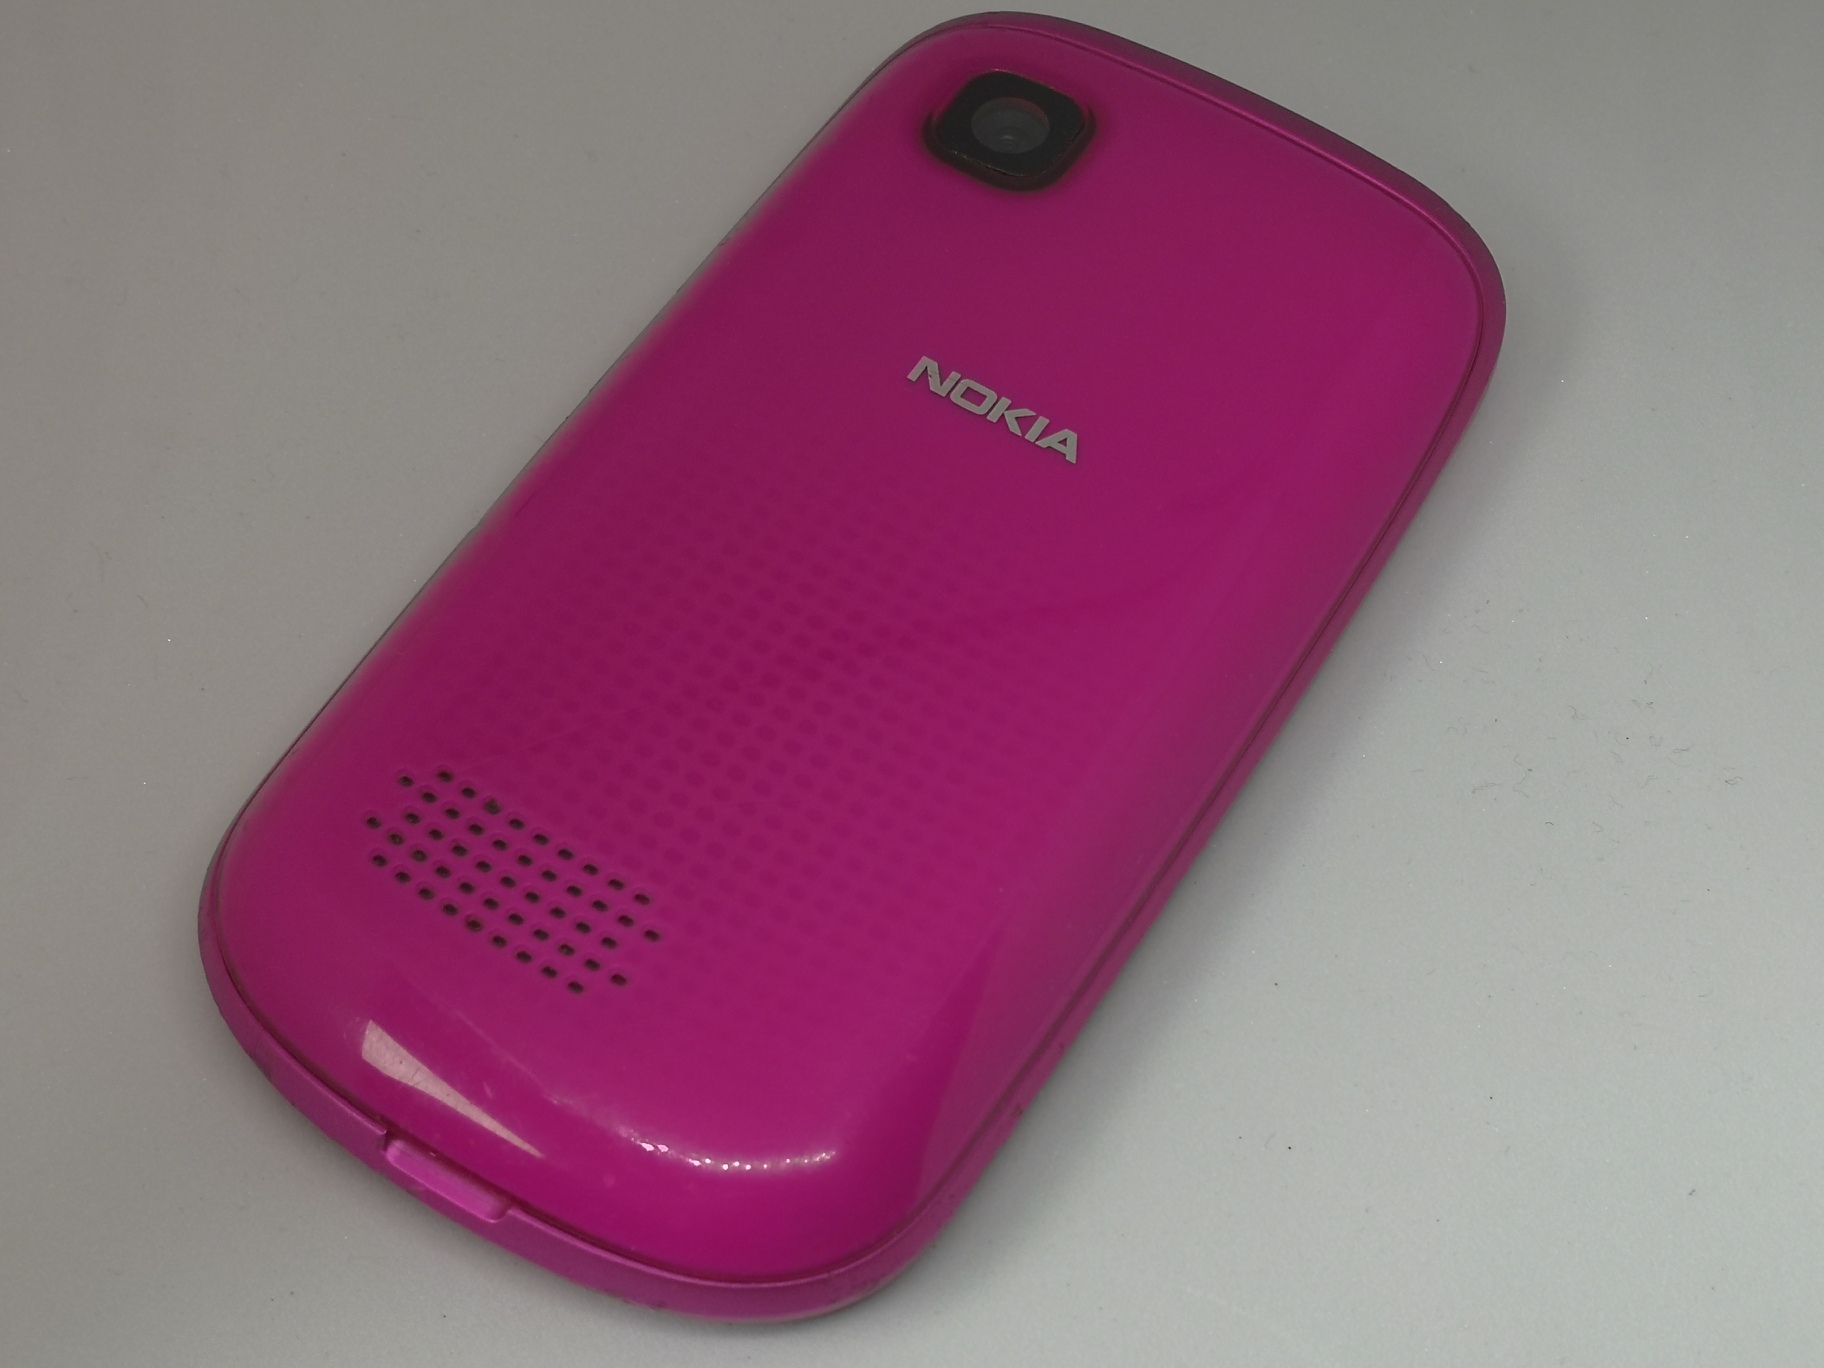 Nokia Asha 201 Review - New QWERTY Family Mobile Phone